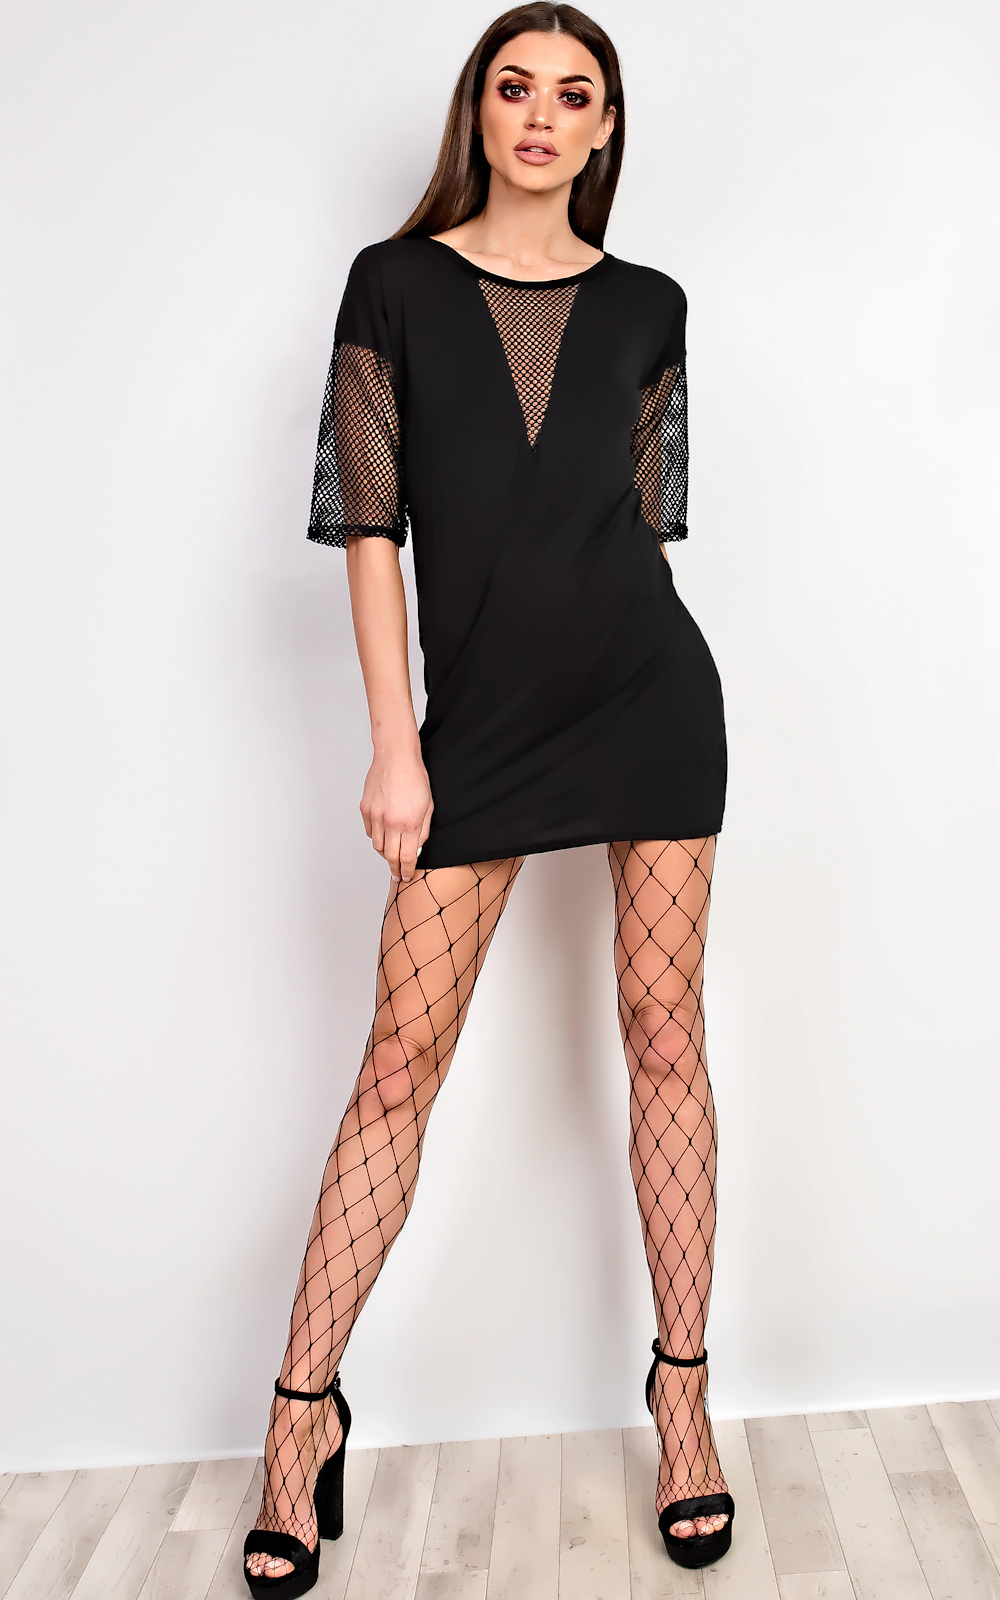 Black t shirt dress ebay - Ikrush Balay Net Detail T Shirt Dress